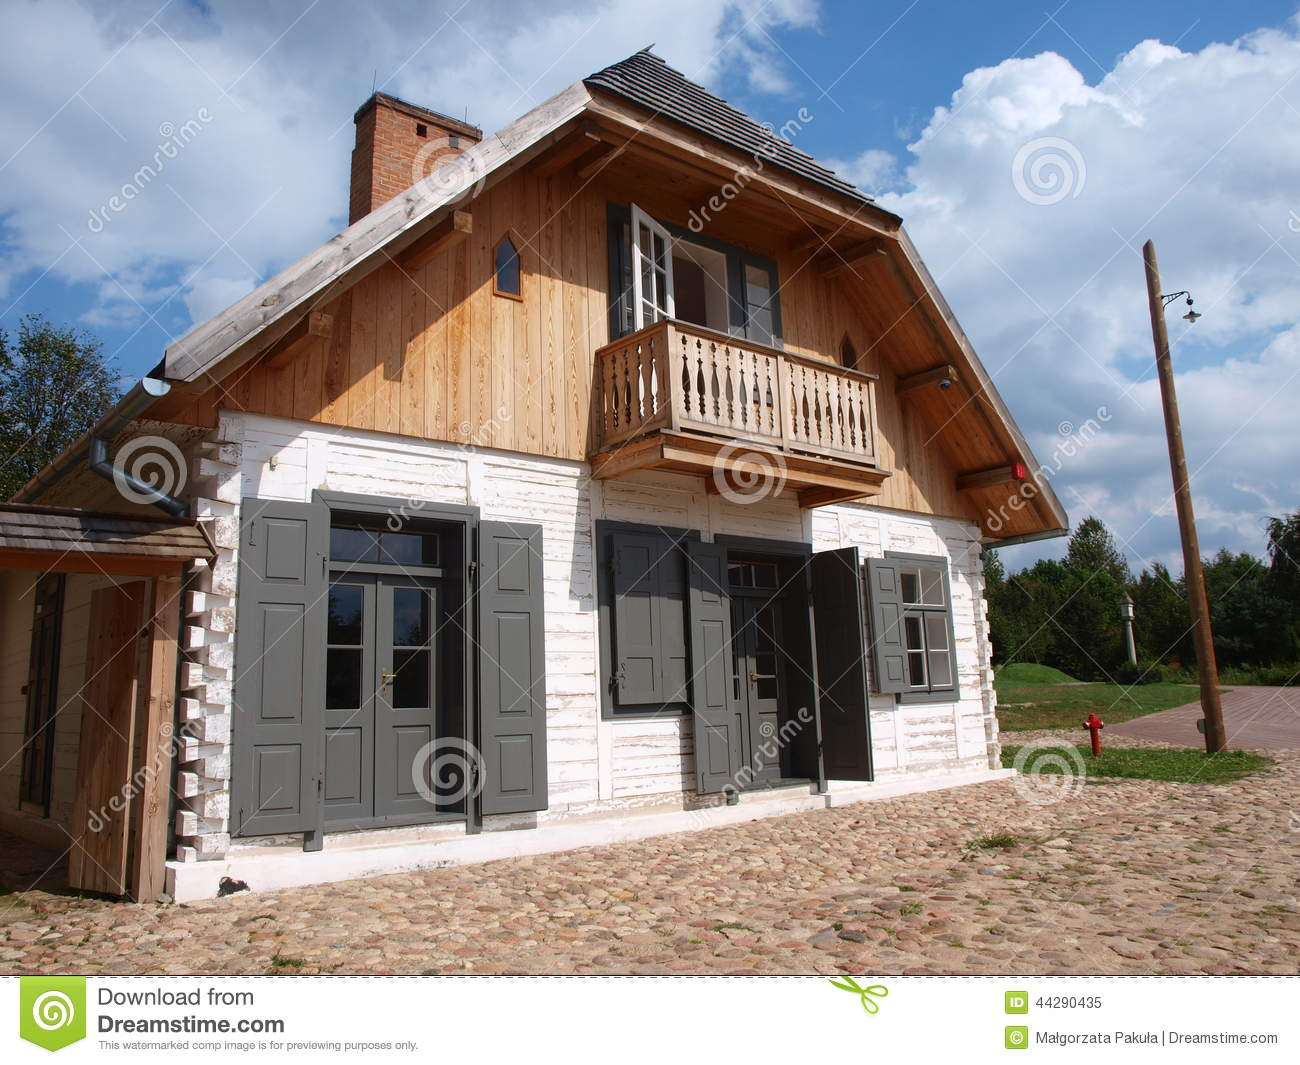 House From Wawolnica Lublin Poland Stock Photo Image 44290435